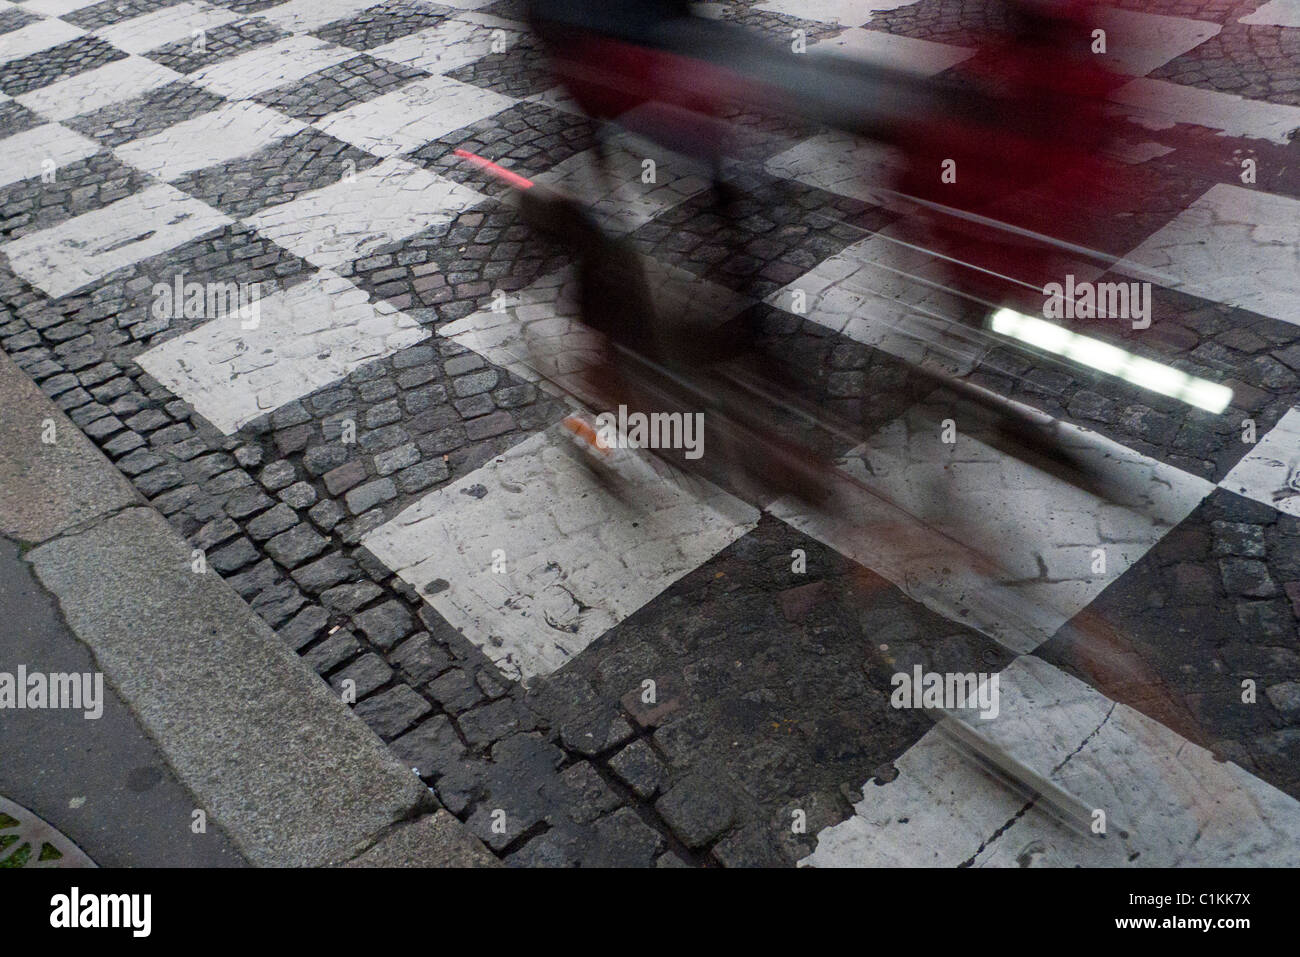 Cyclist riding over chequered road markings, Paris France - Stock Image